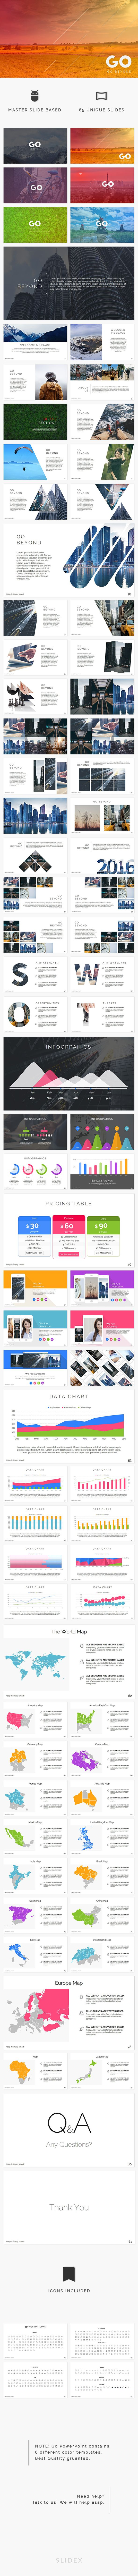 GO PowerPoint Template. Download here: https://graphicriver.net/item/go-powerpoint/17649286?ref=ksioks